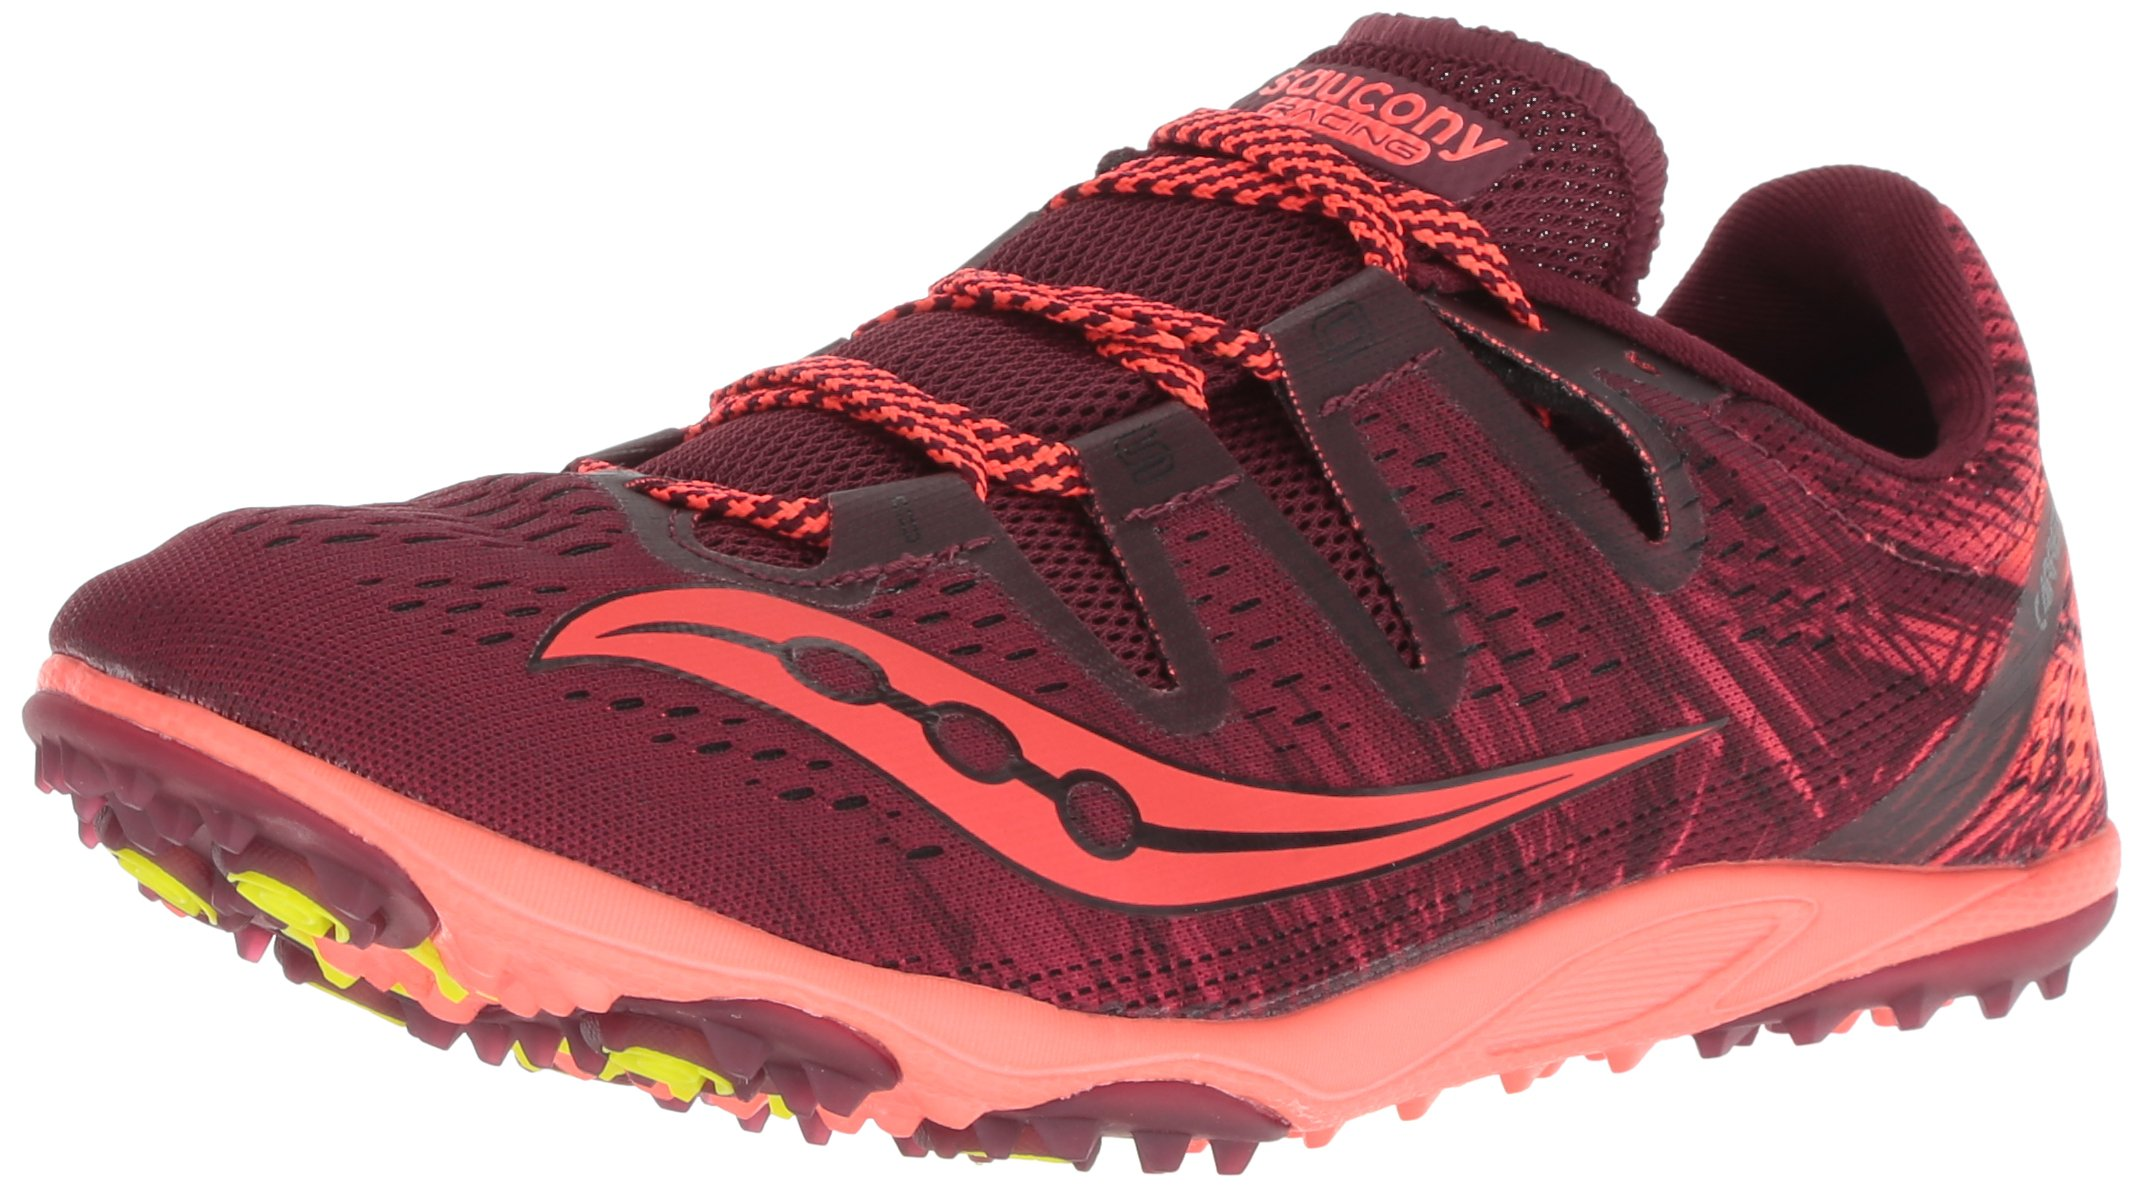 Saucony Women's Carrera XC 3 Flat Track Shoe, Berry/Vizi red, 8 M US by Saucony